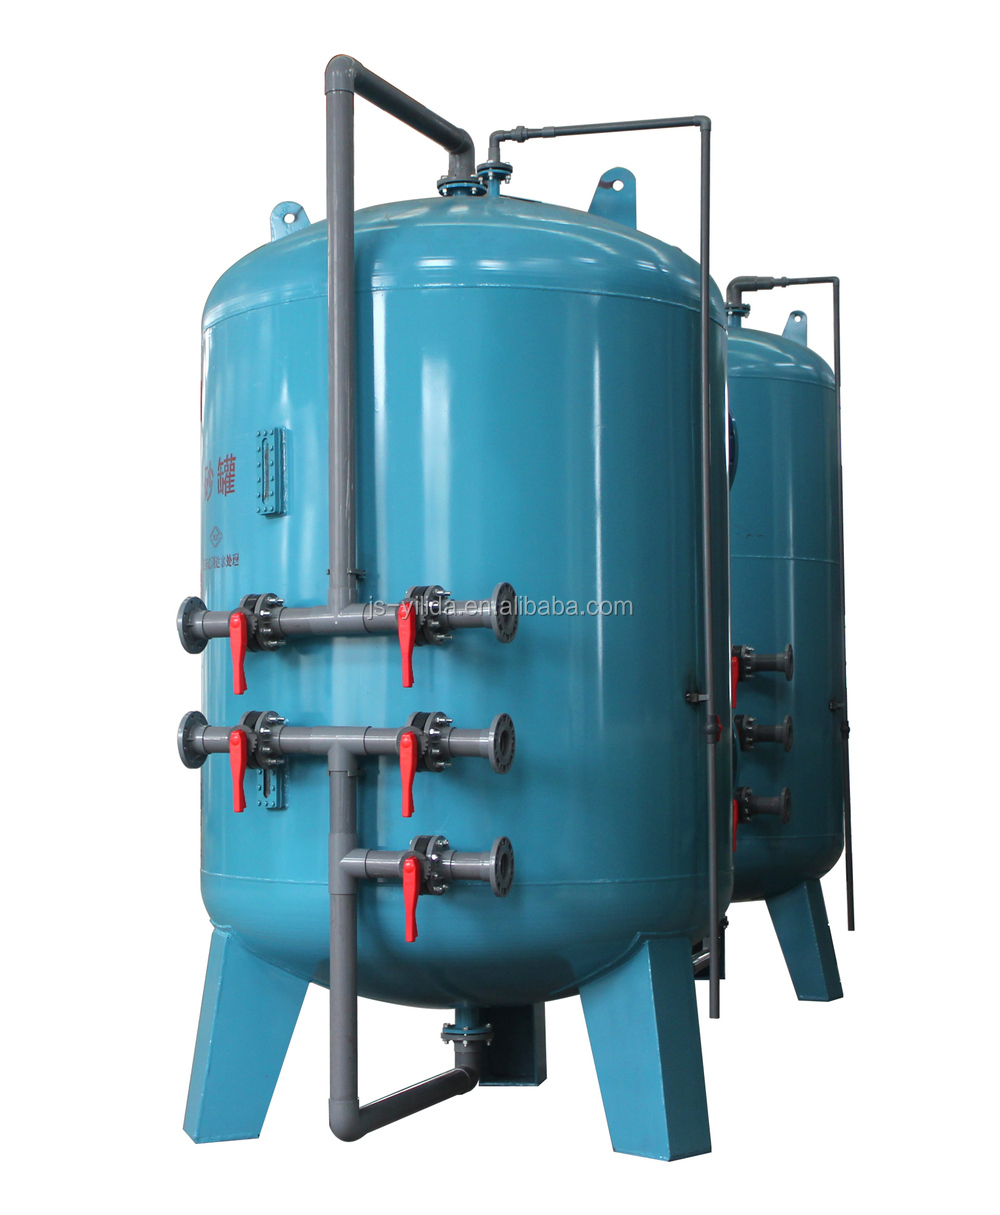 Automatic backwash pressure sand filter for cooling town